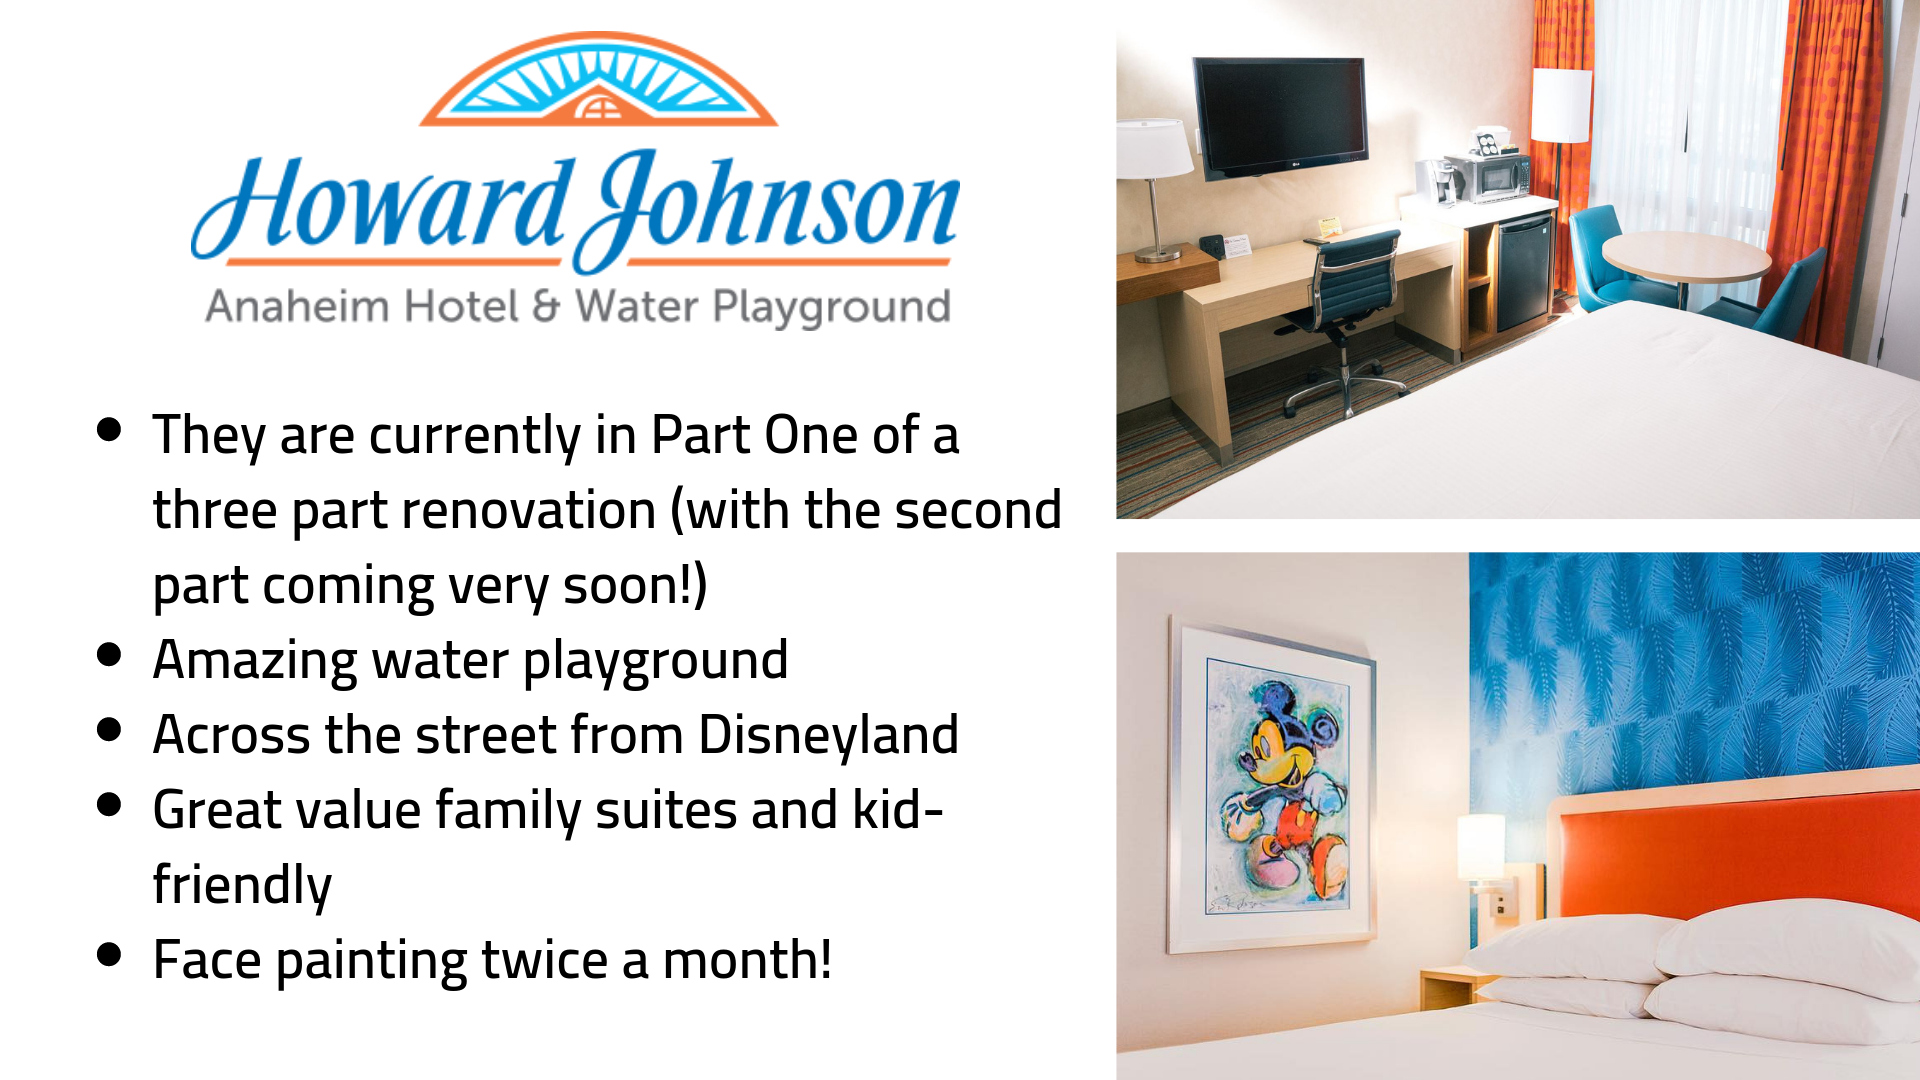 They are currently in Part One of a three part renovation (with the second part coming very soon!) Amazing water playground Across the street from Disneyland Great value family suites and kid-friendly Face painting twice a month!